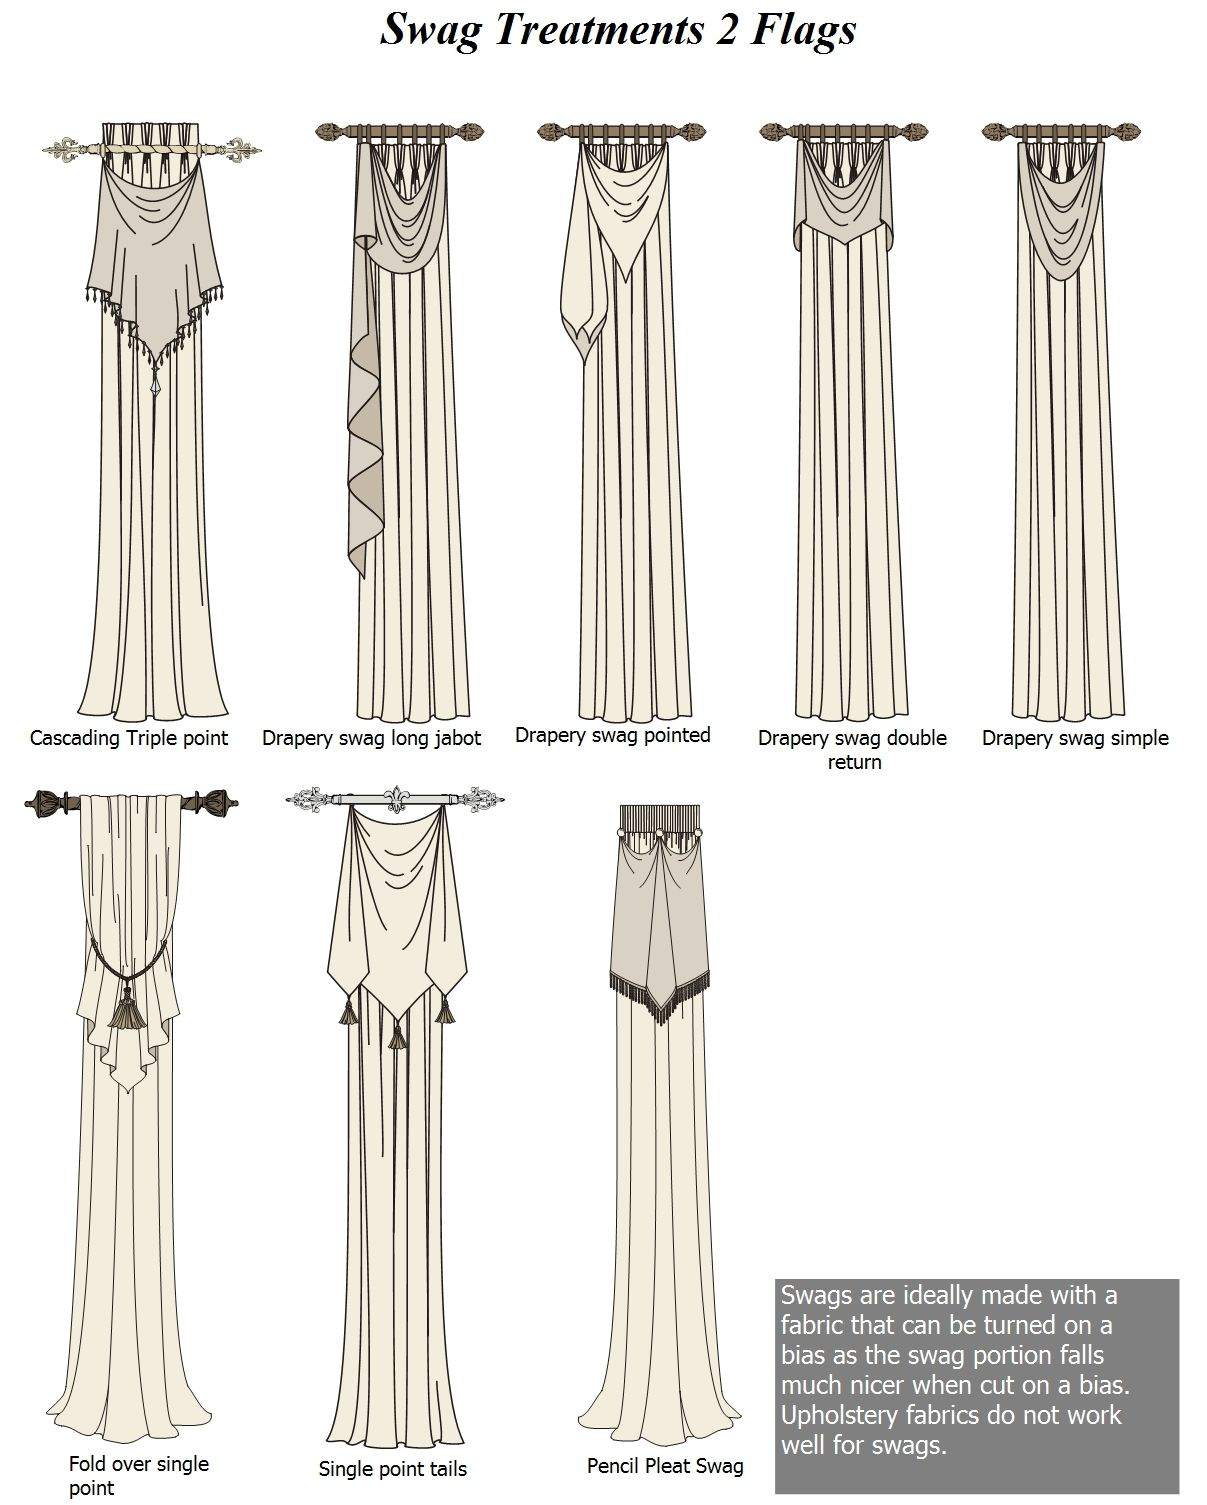 Swag curtains pattern - Swags And Casscades Point Drapery Swag Long Jabot Drapery Swag Pointed Drapery